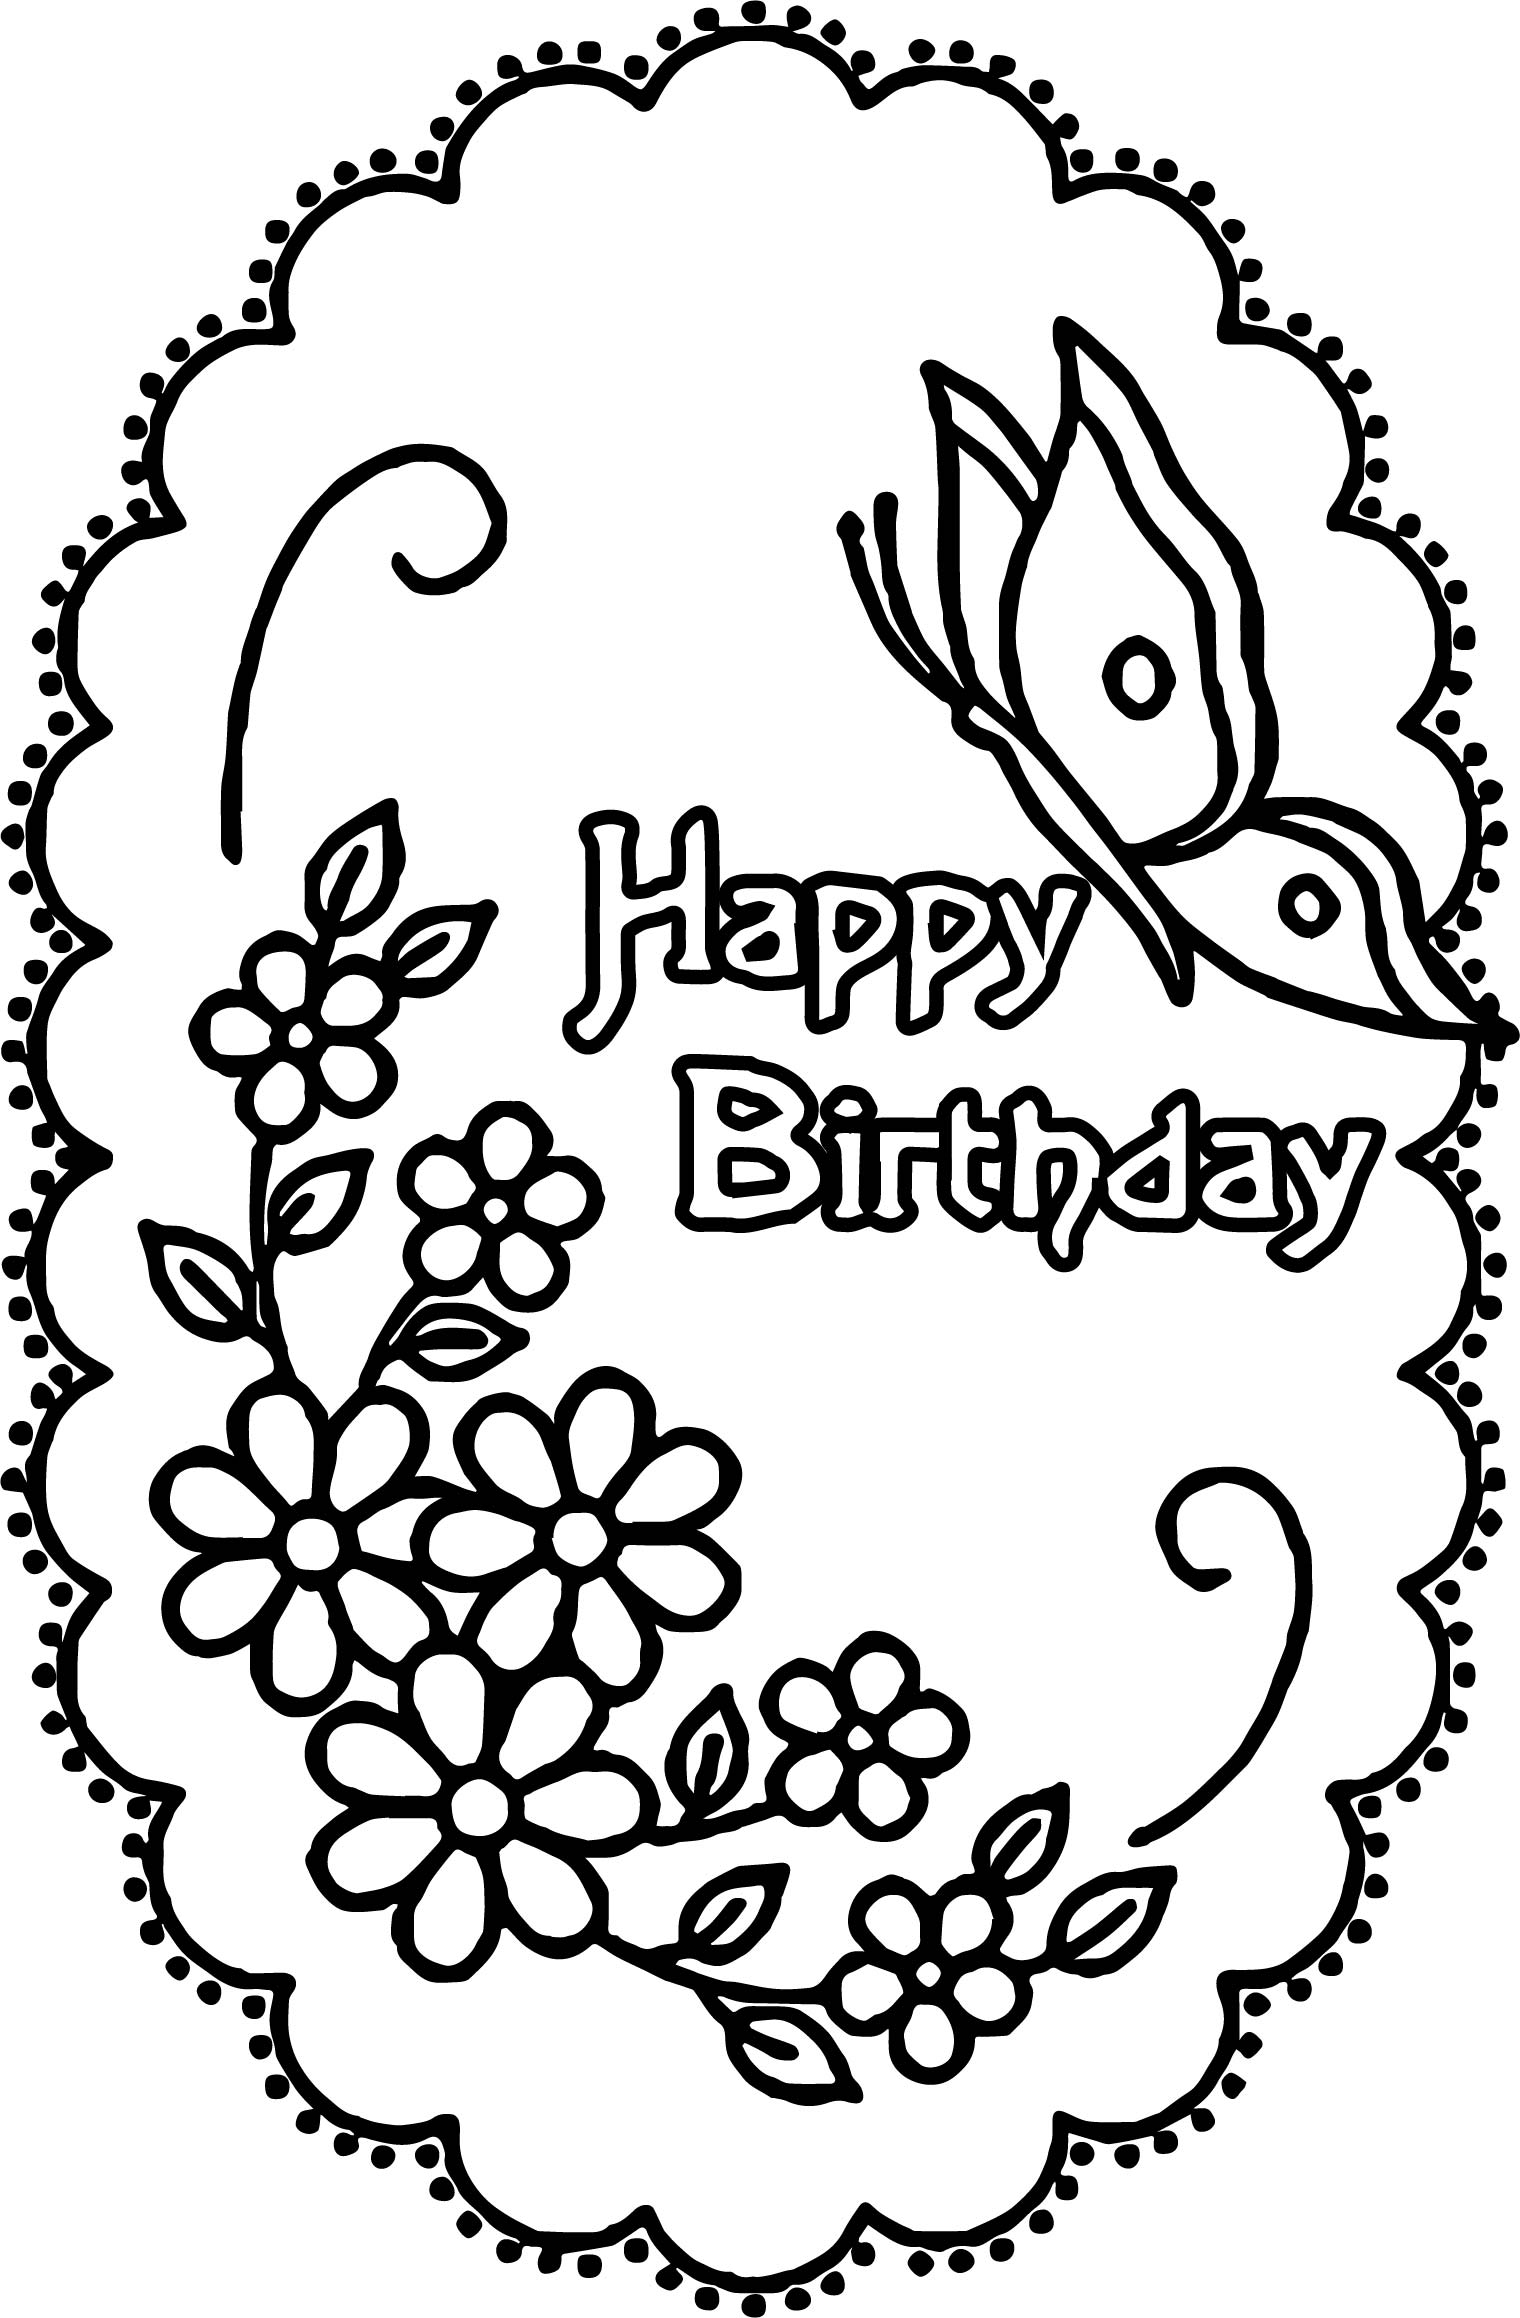 coloring book happy birthday ; coloring-book-happy-birthday-flower-butterfly-page-wecoloringpage-pages-1520x2318-24